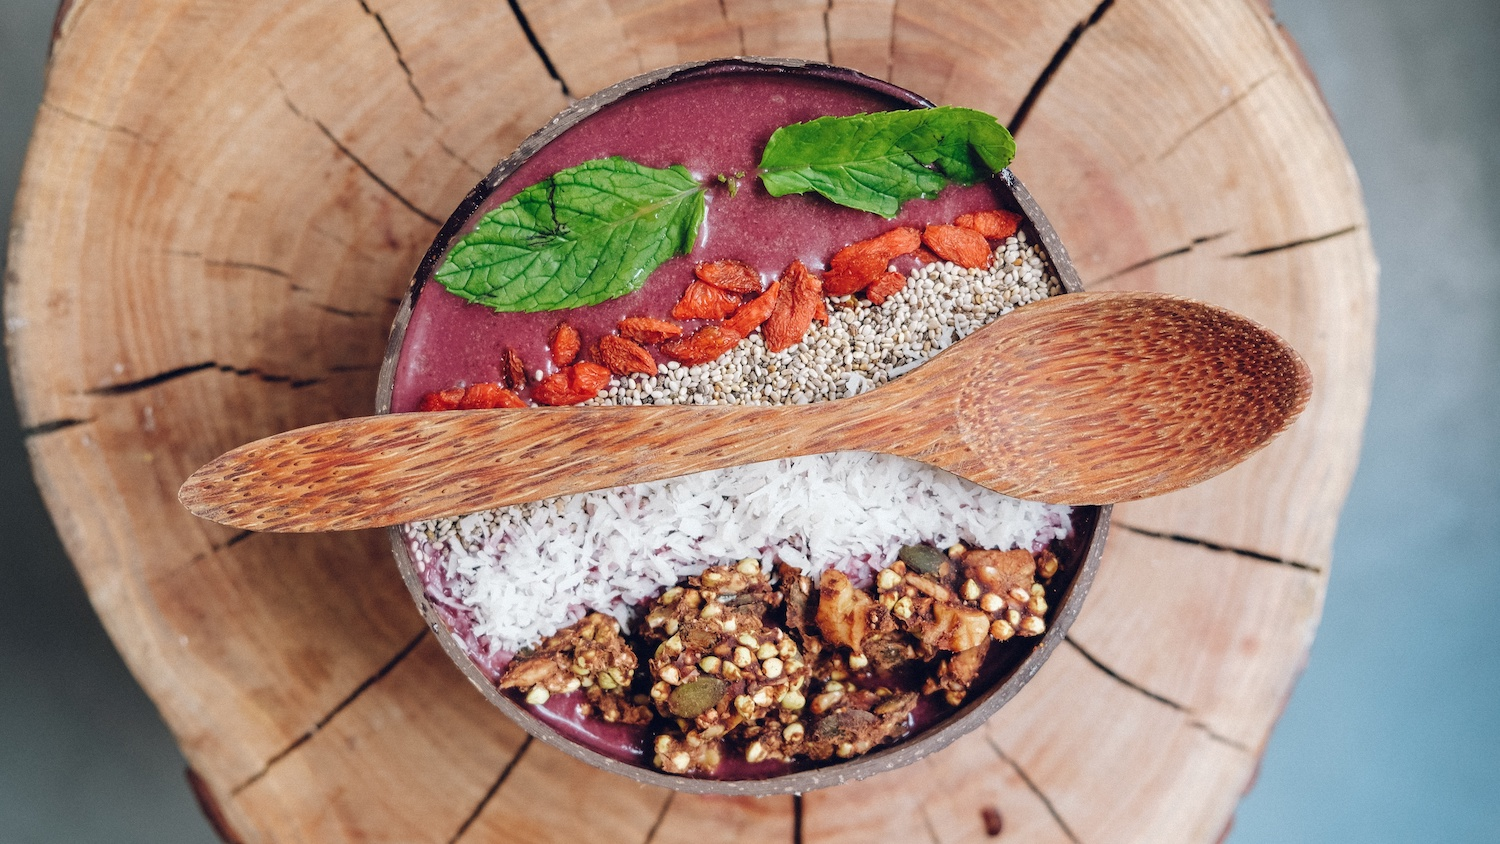 Is Acai Vegan and Do You Need to Eat It to Be Popular on Instagram?